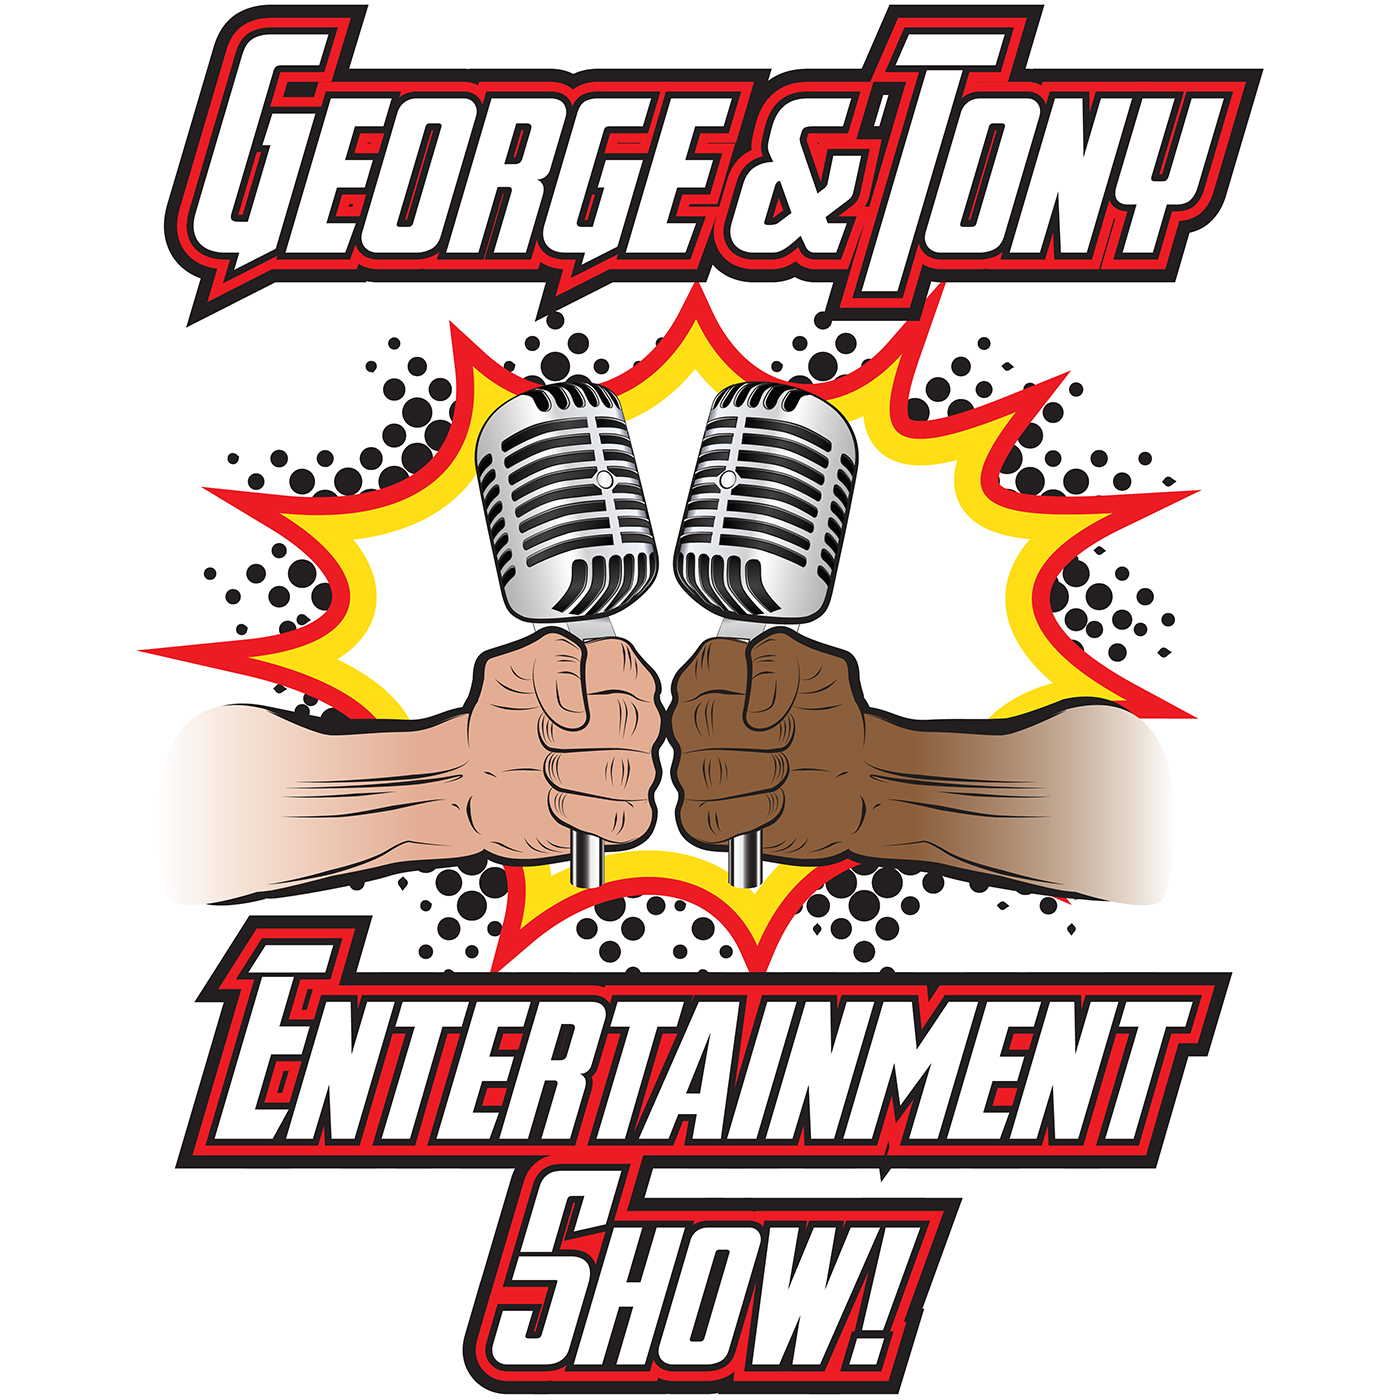 George and Tony Entertainment Show #111